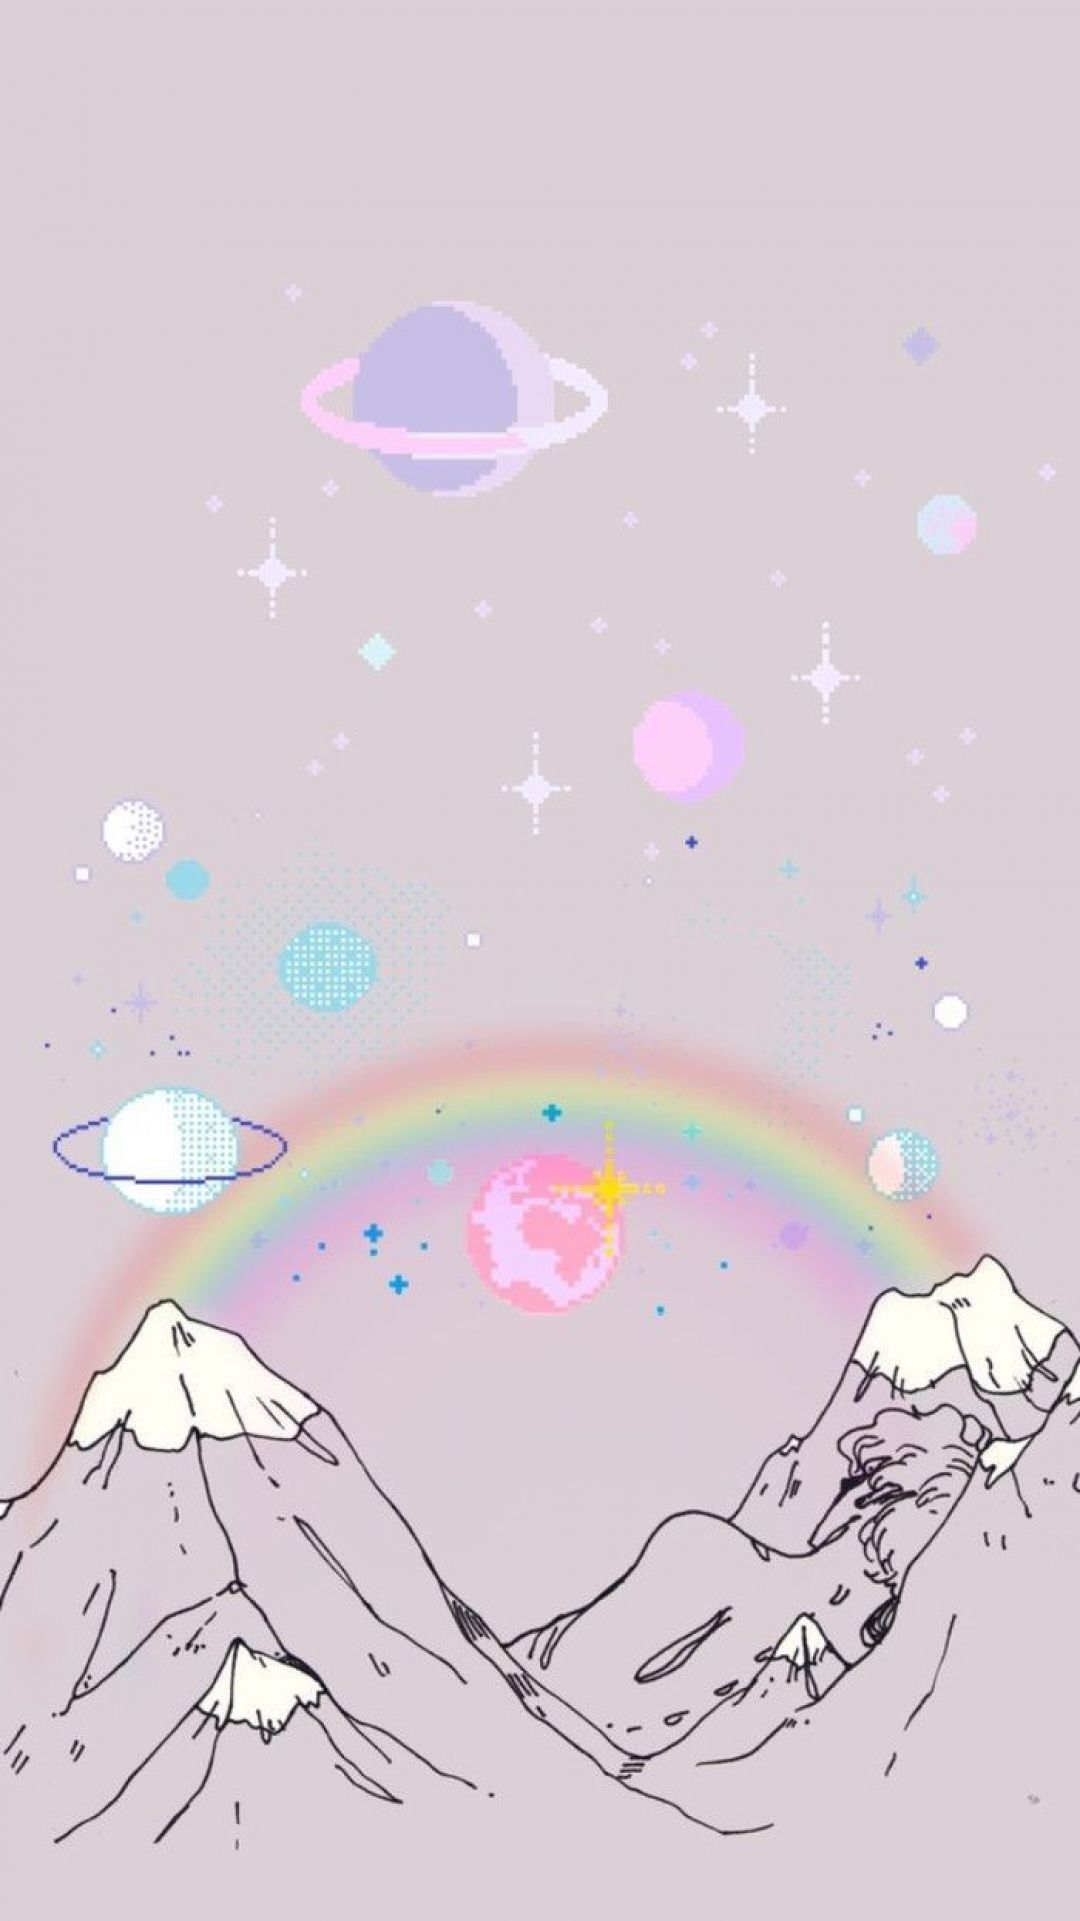 35 Pastel Aesthetic Anime Hd Wallpapers Desktop Background Android Iphone 1080p 4k 1080x1921 2020